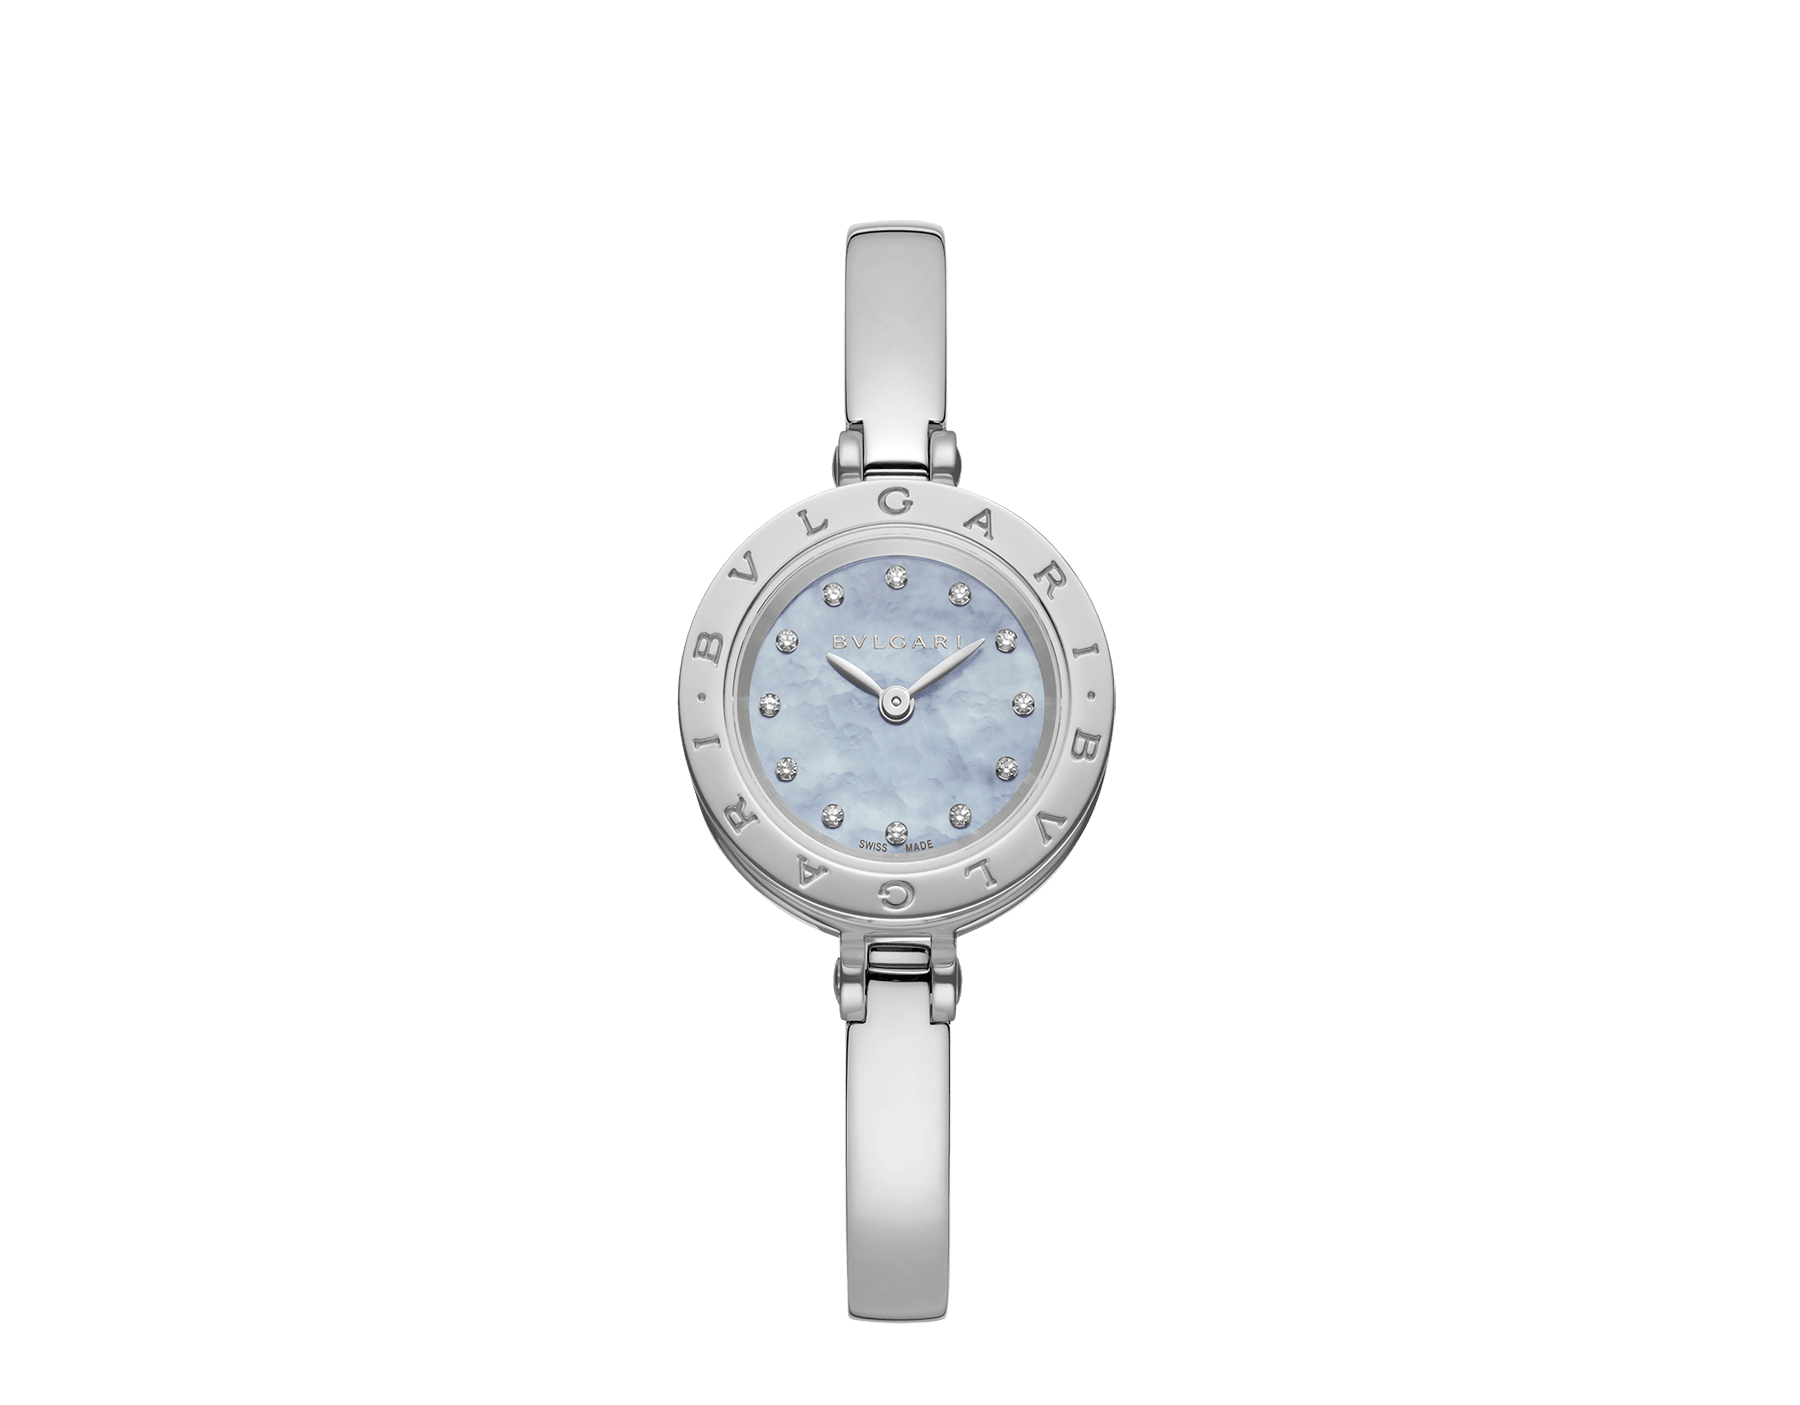 B.zero1 watch with stainless steel case, blue mother-of-pearl dial set with diamond indexes and stainless steel bangle. Medium size. B01watch-white-white-dial2 image 4